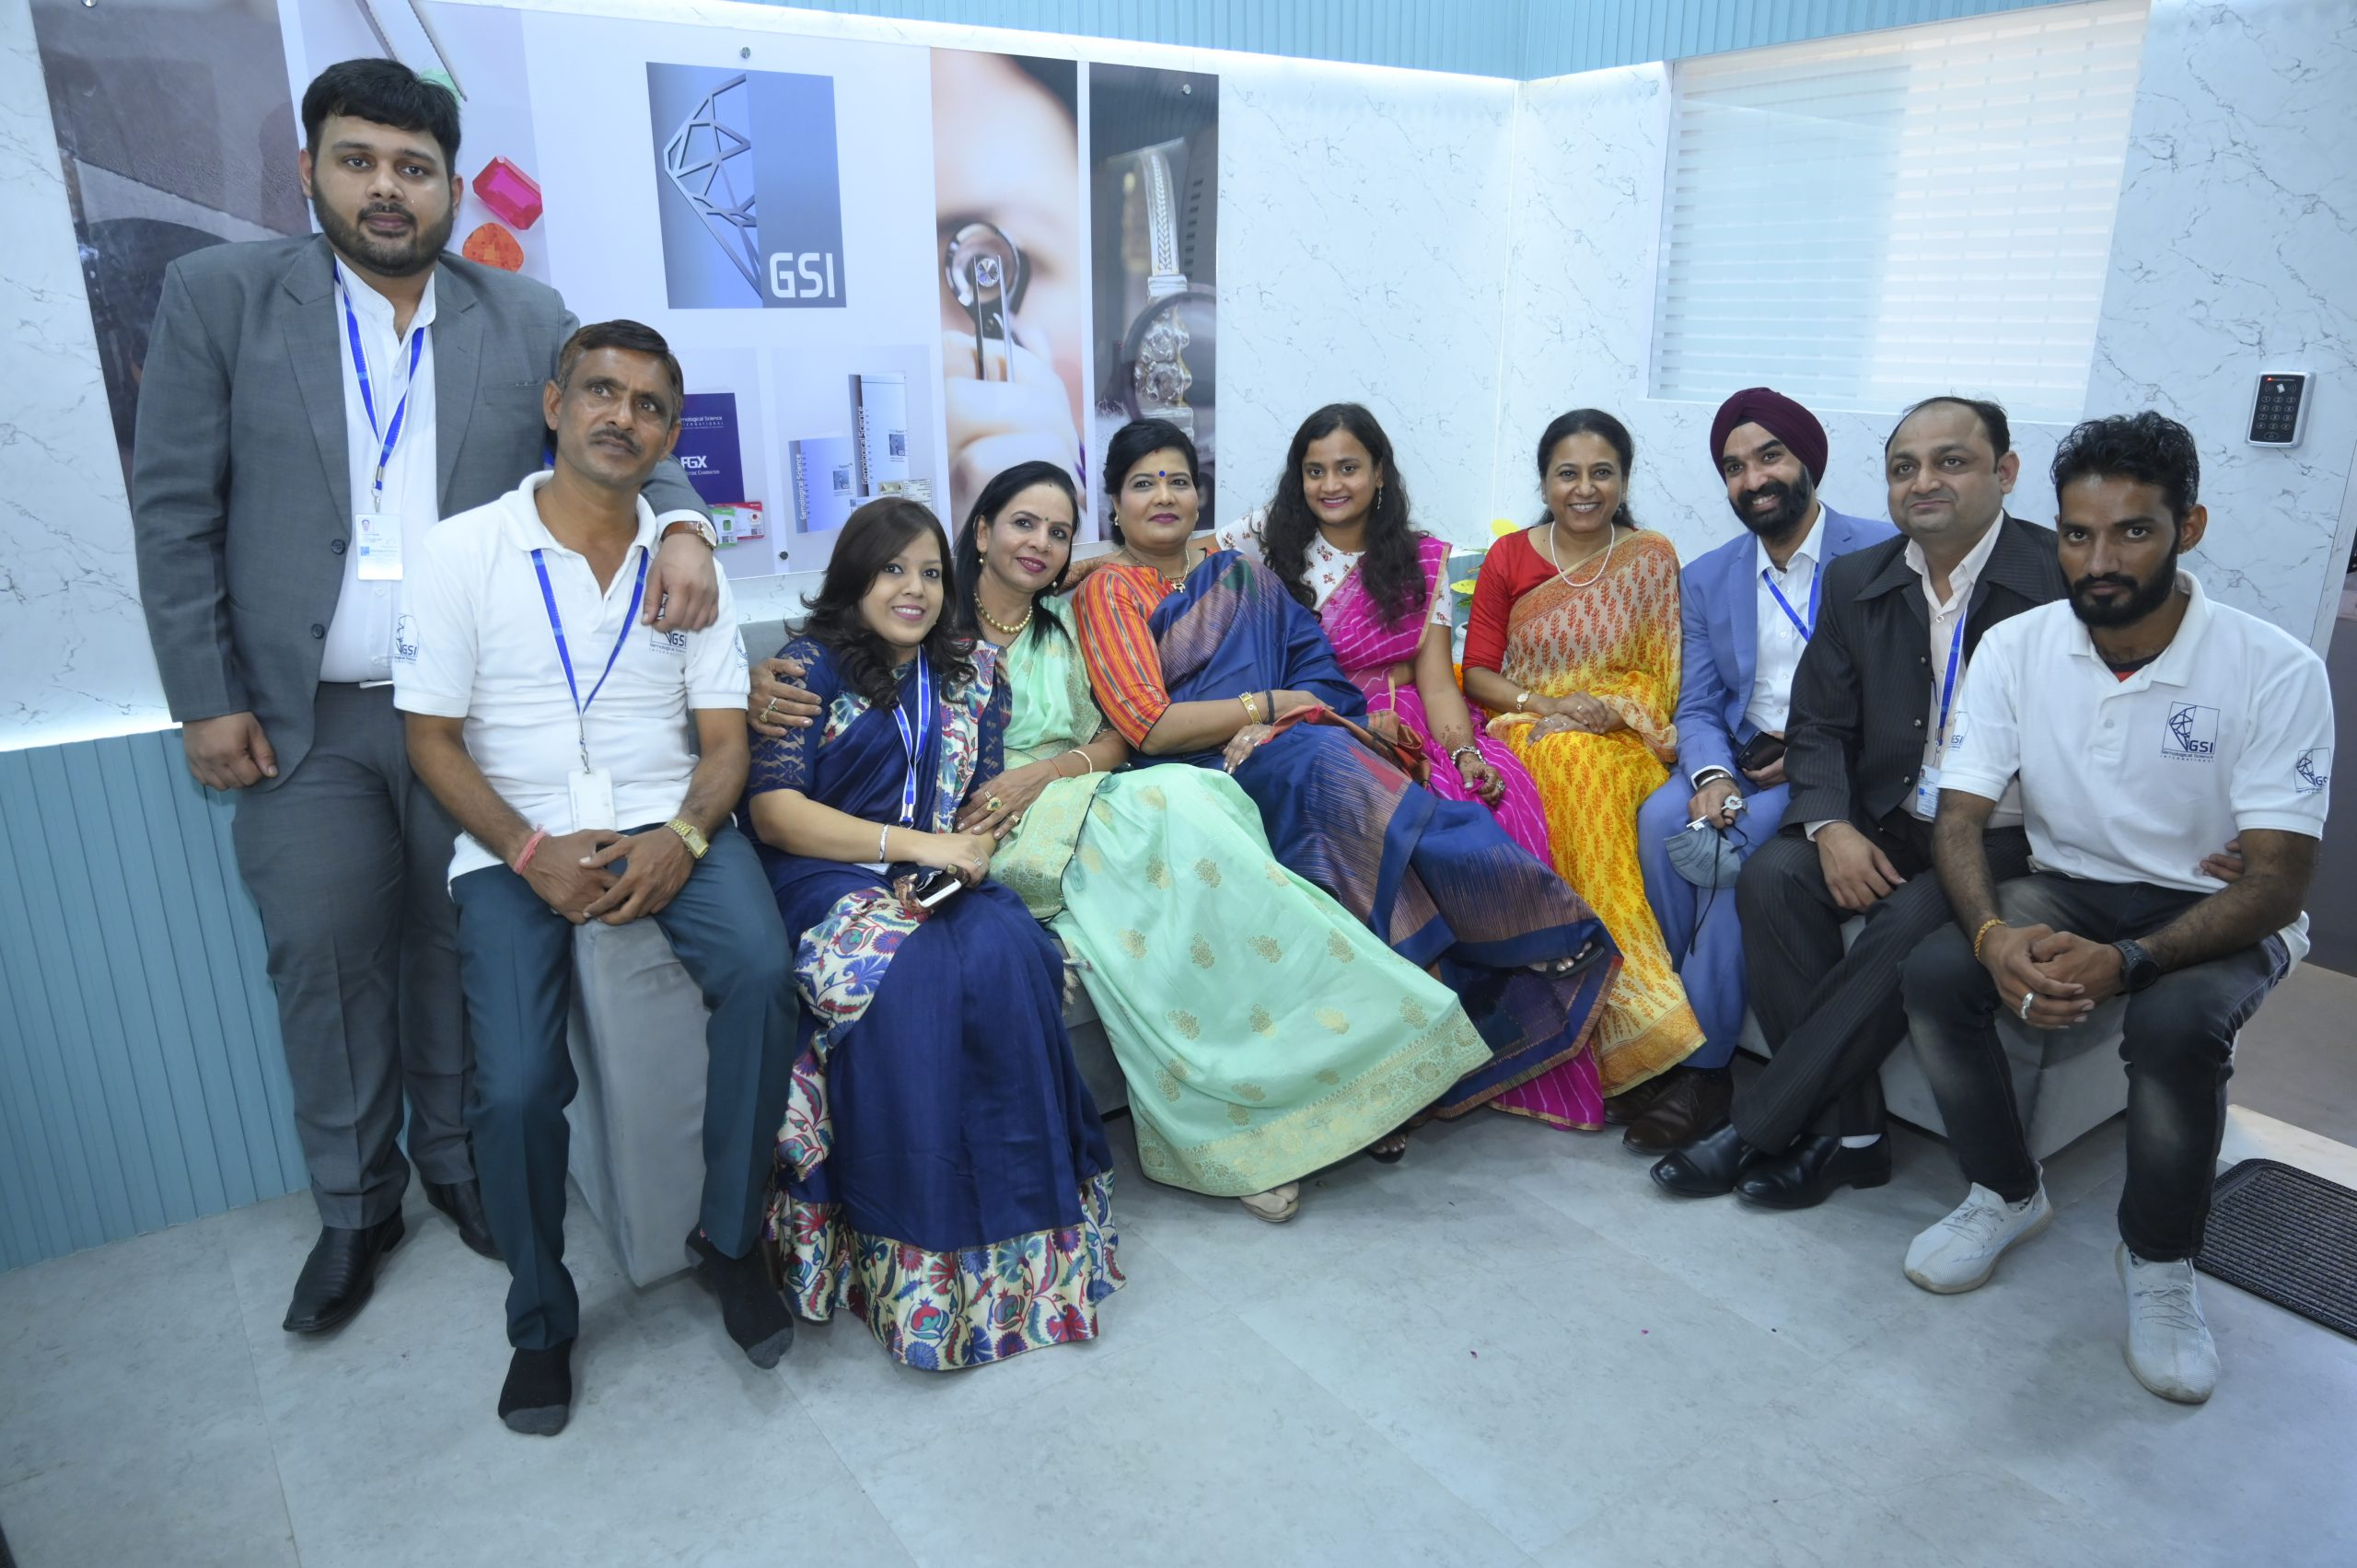 GSI Jaipur Team in the reception lounge